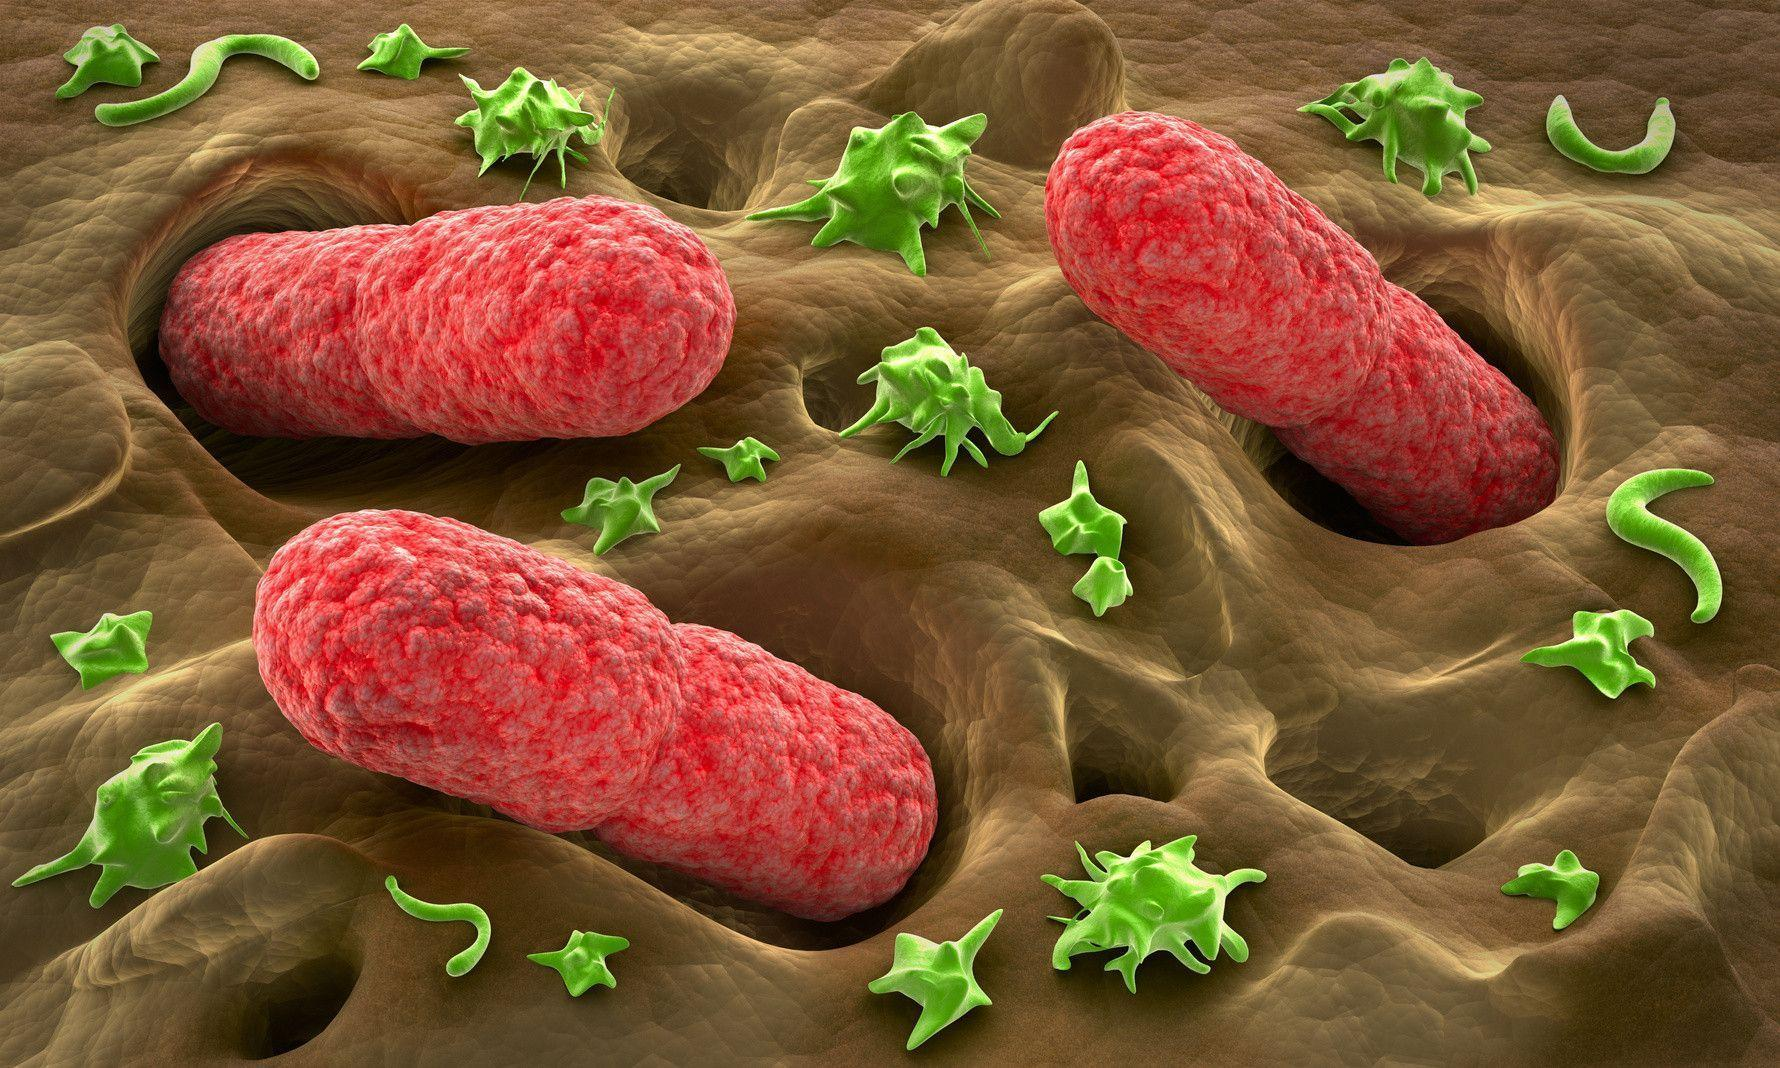 Staphylococcus Bacteria, wallpaper, Staphylococcus Bacteria hd